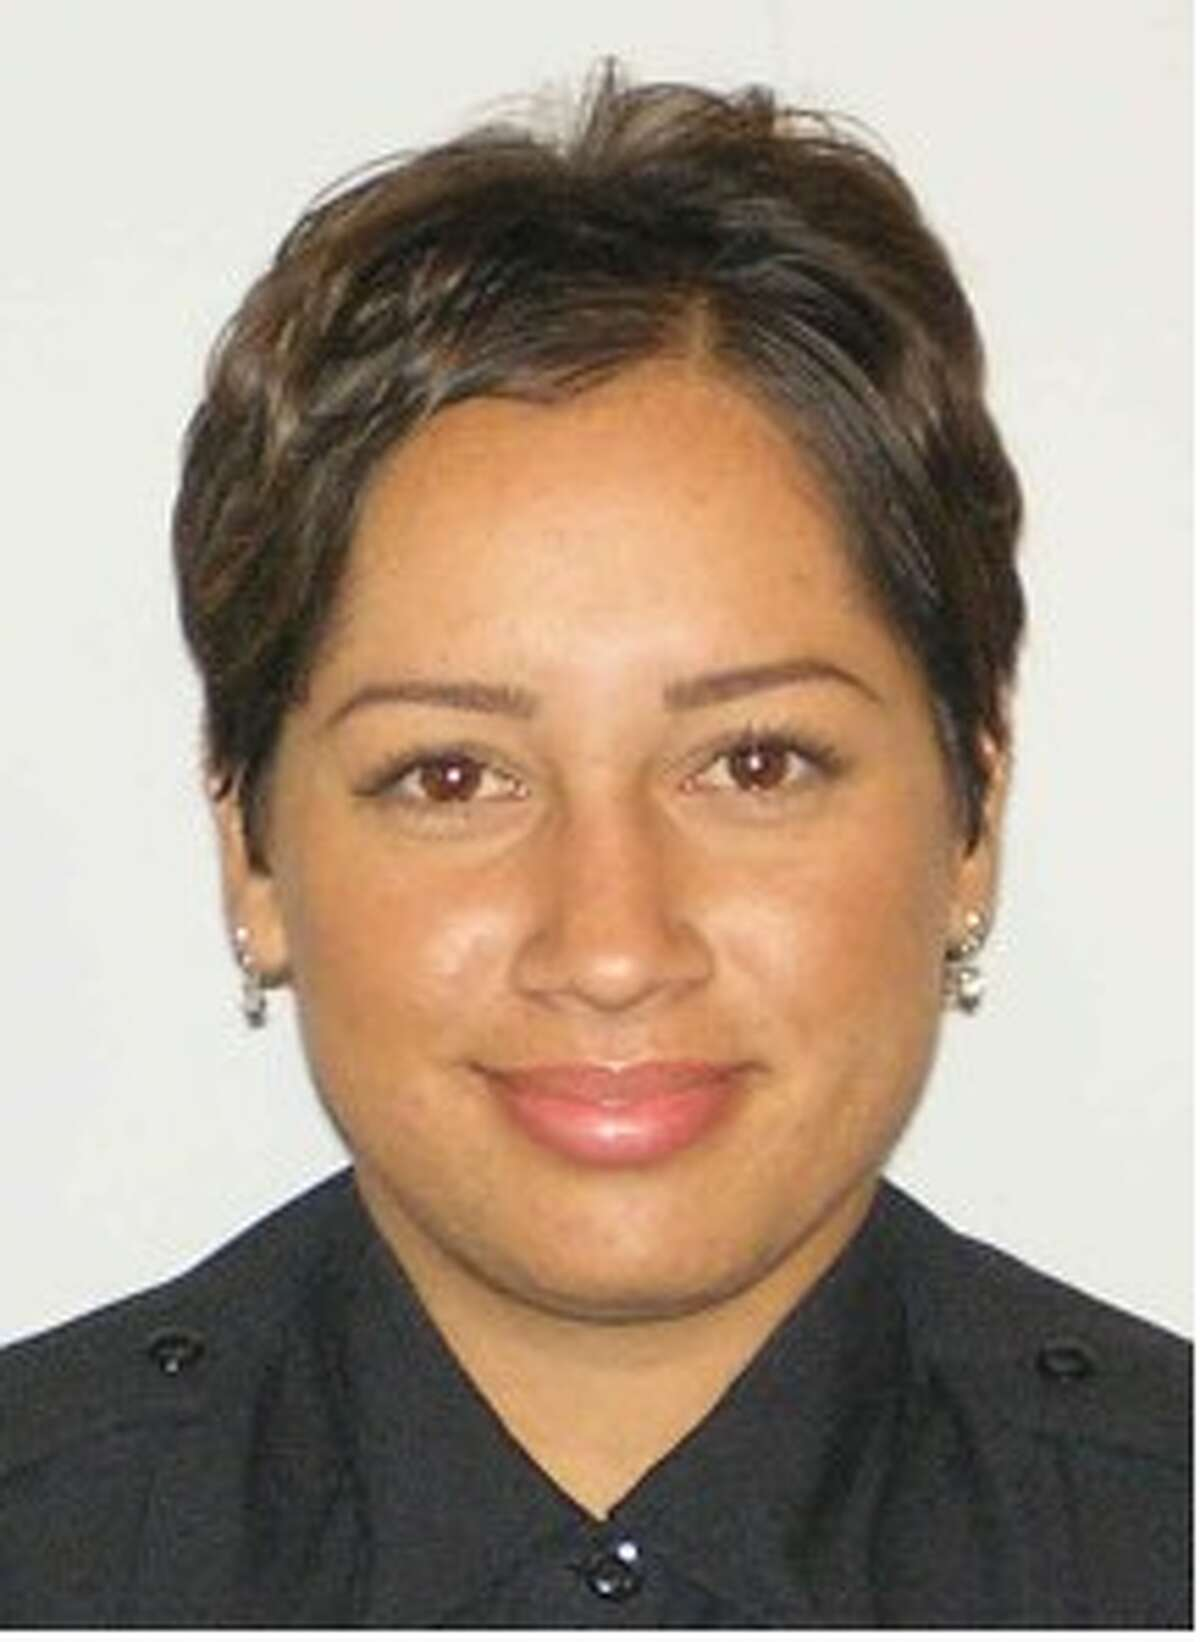 Officer Stephanie Brown, 27, was killed by a wrong-way driver early Tuesday just north of downtown. The wrong-way driver, whose name has not yet been released, also died in the crash.